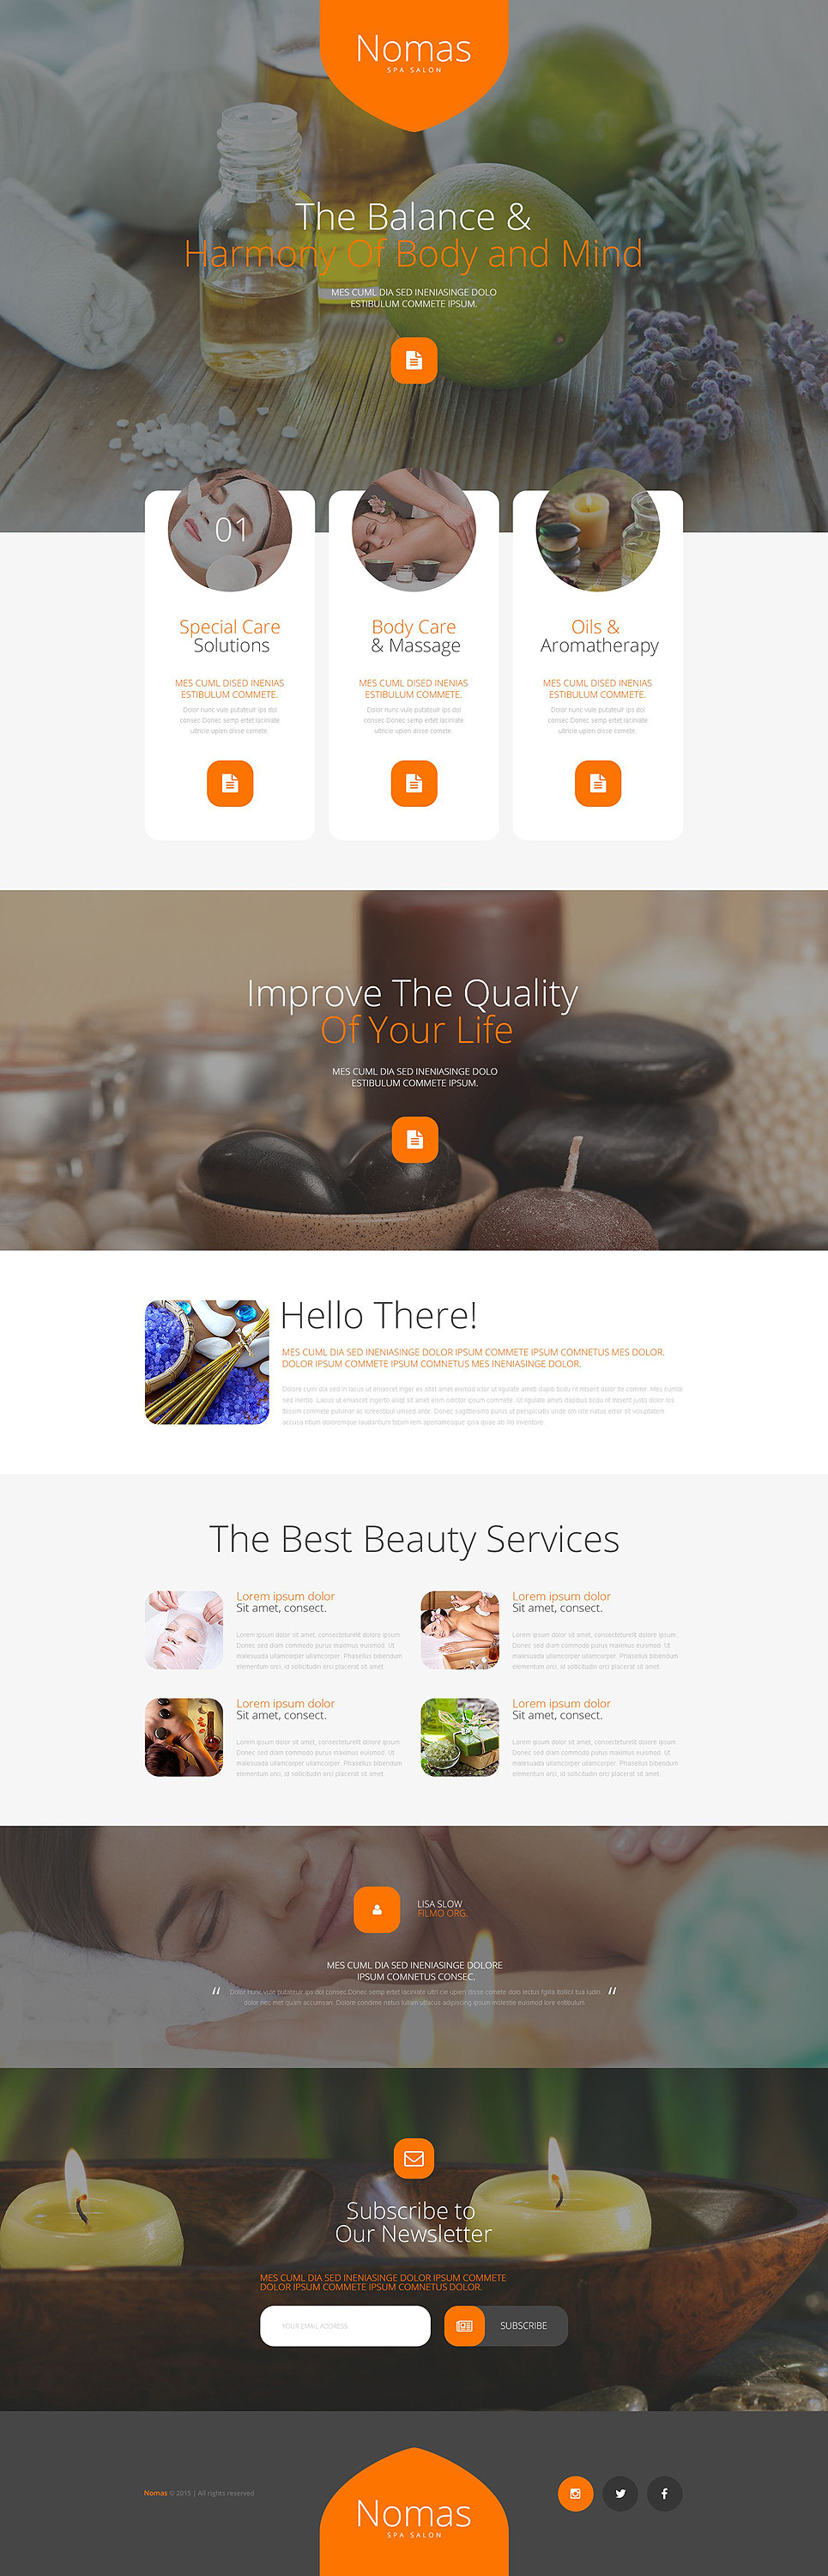 Spa Accessories Responsive Landing Page Template New Screenshots BIG